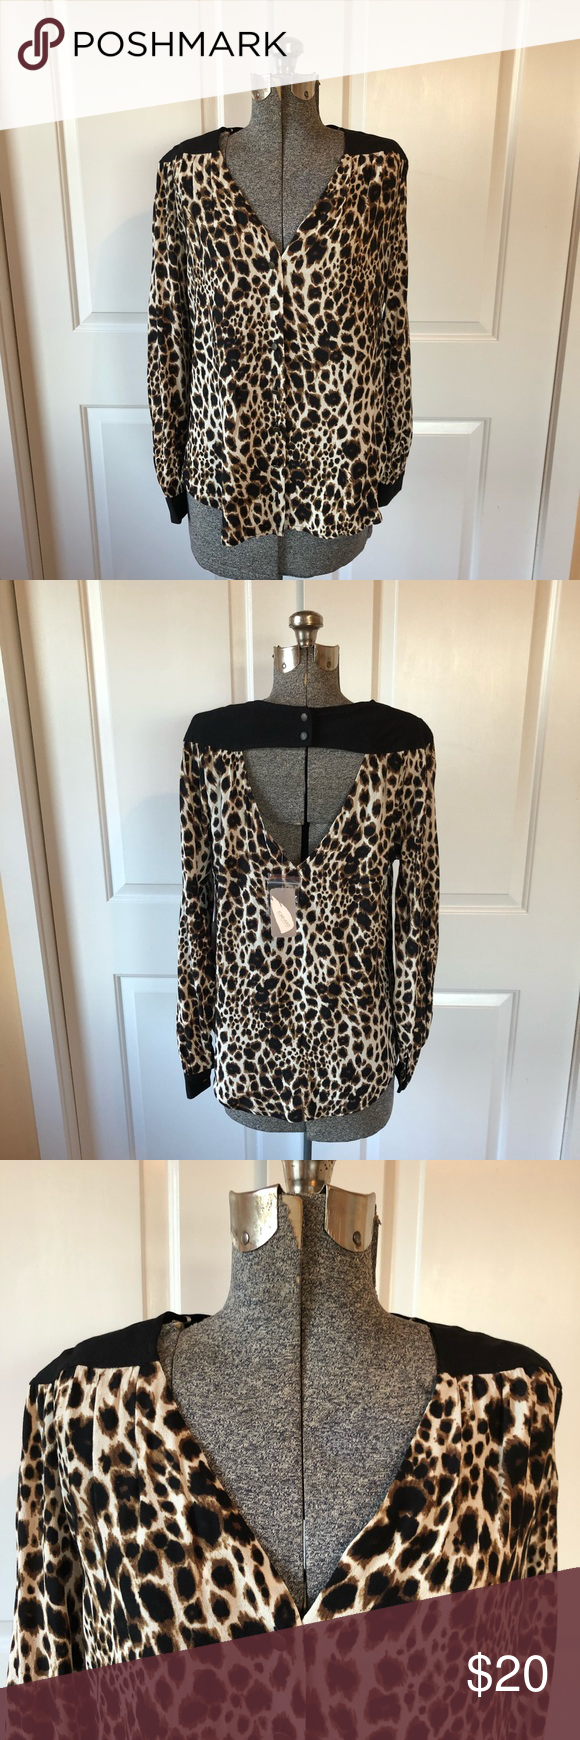 825309a47ec4 NWT LEOPARD PRINT BLOUSE W/CUTOUT BACK New with tags Forever 21 Tops Blouses